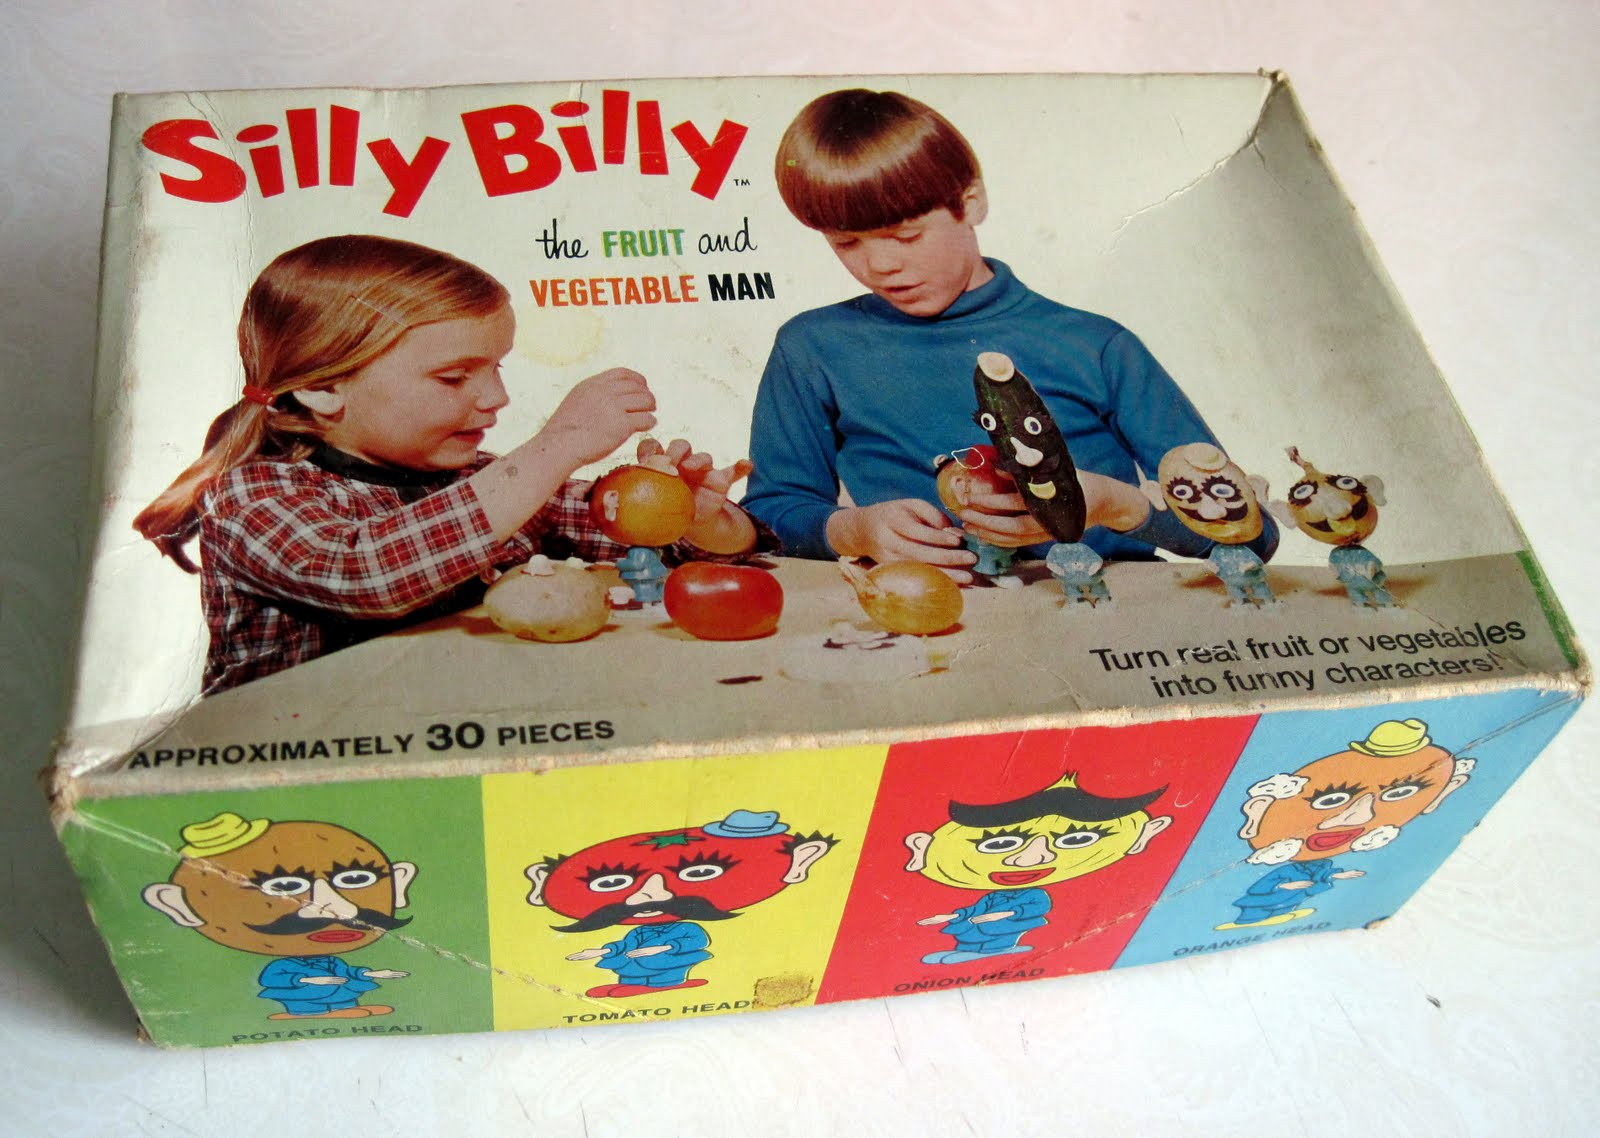 silly billy box